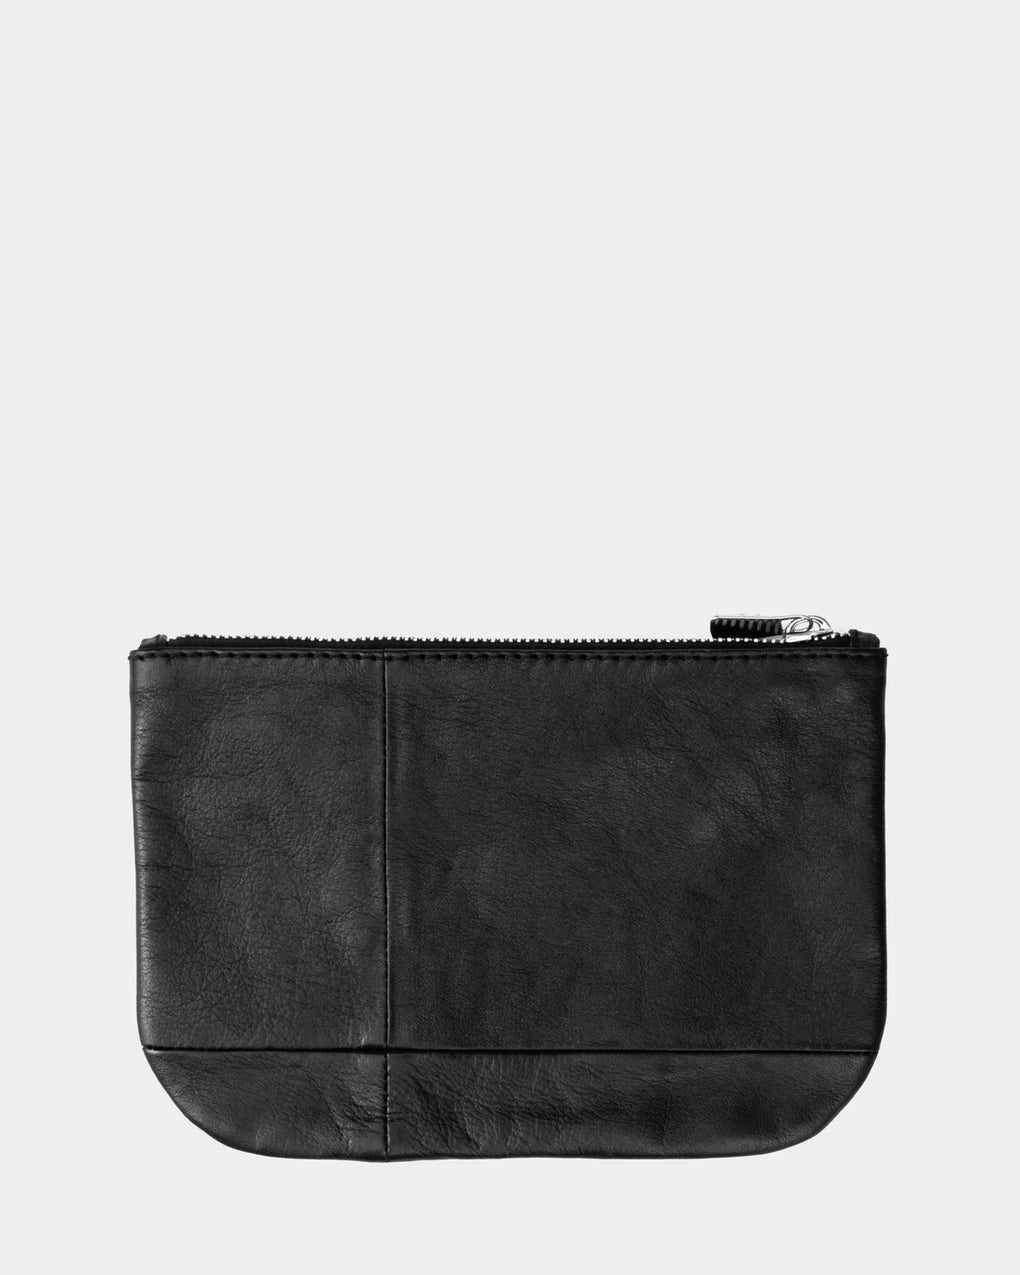 Bauhaus Pouch Medium - Black